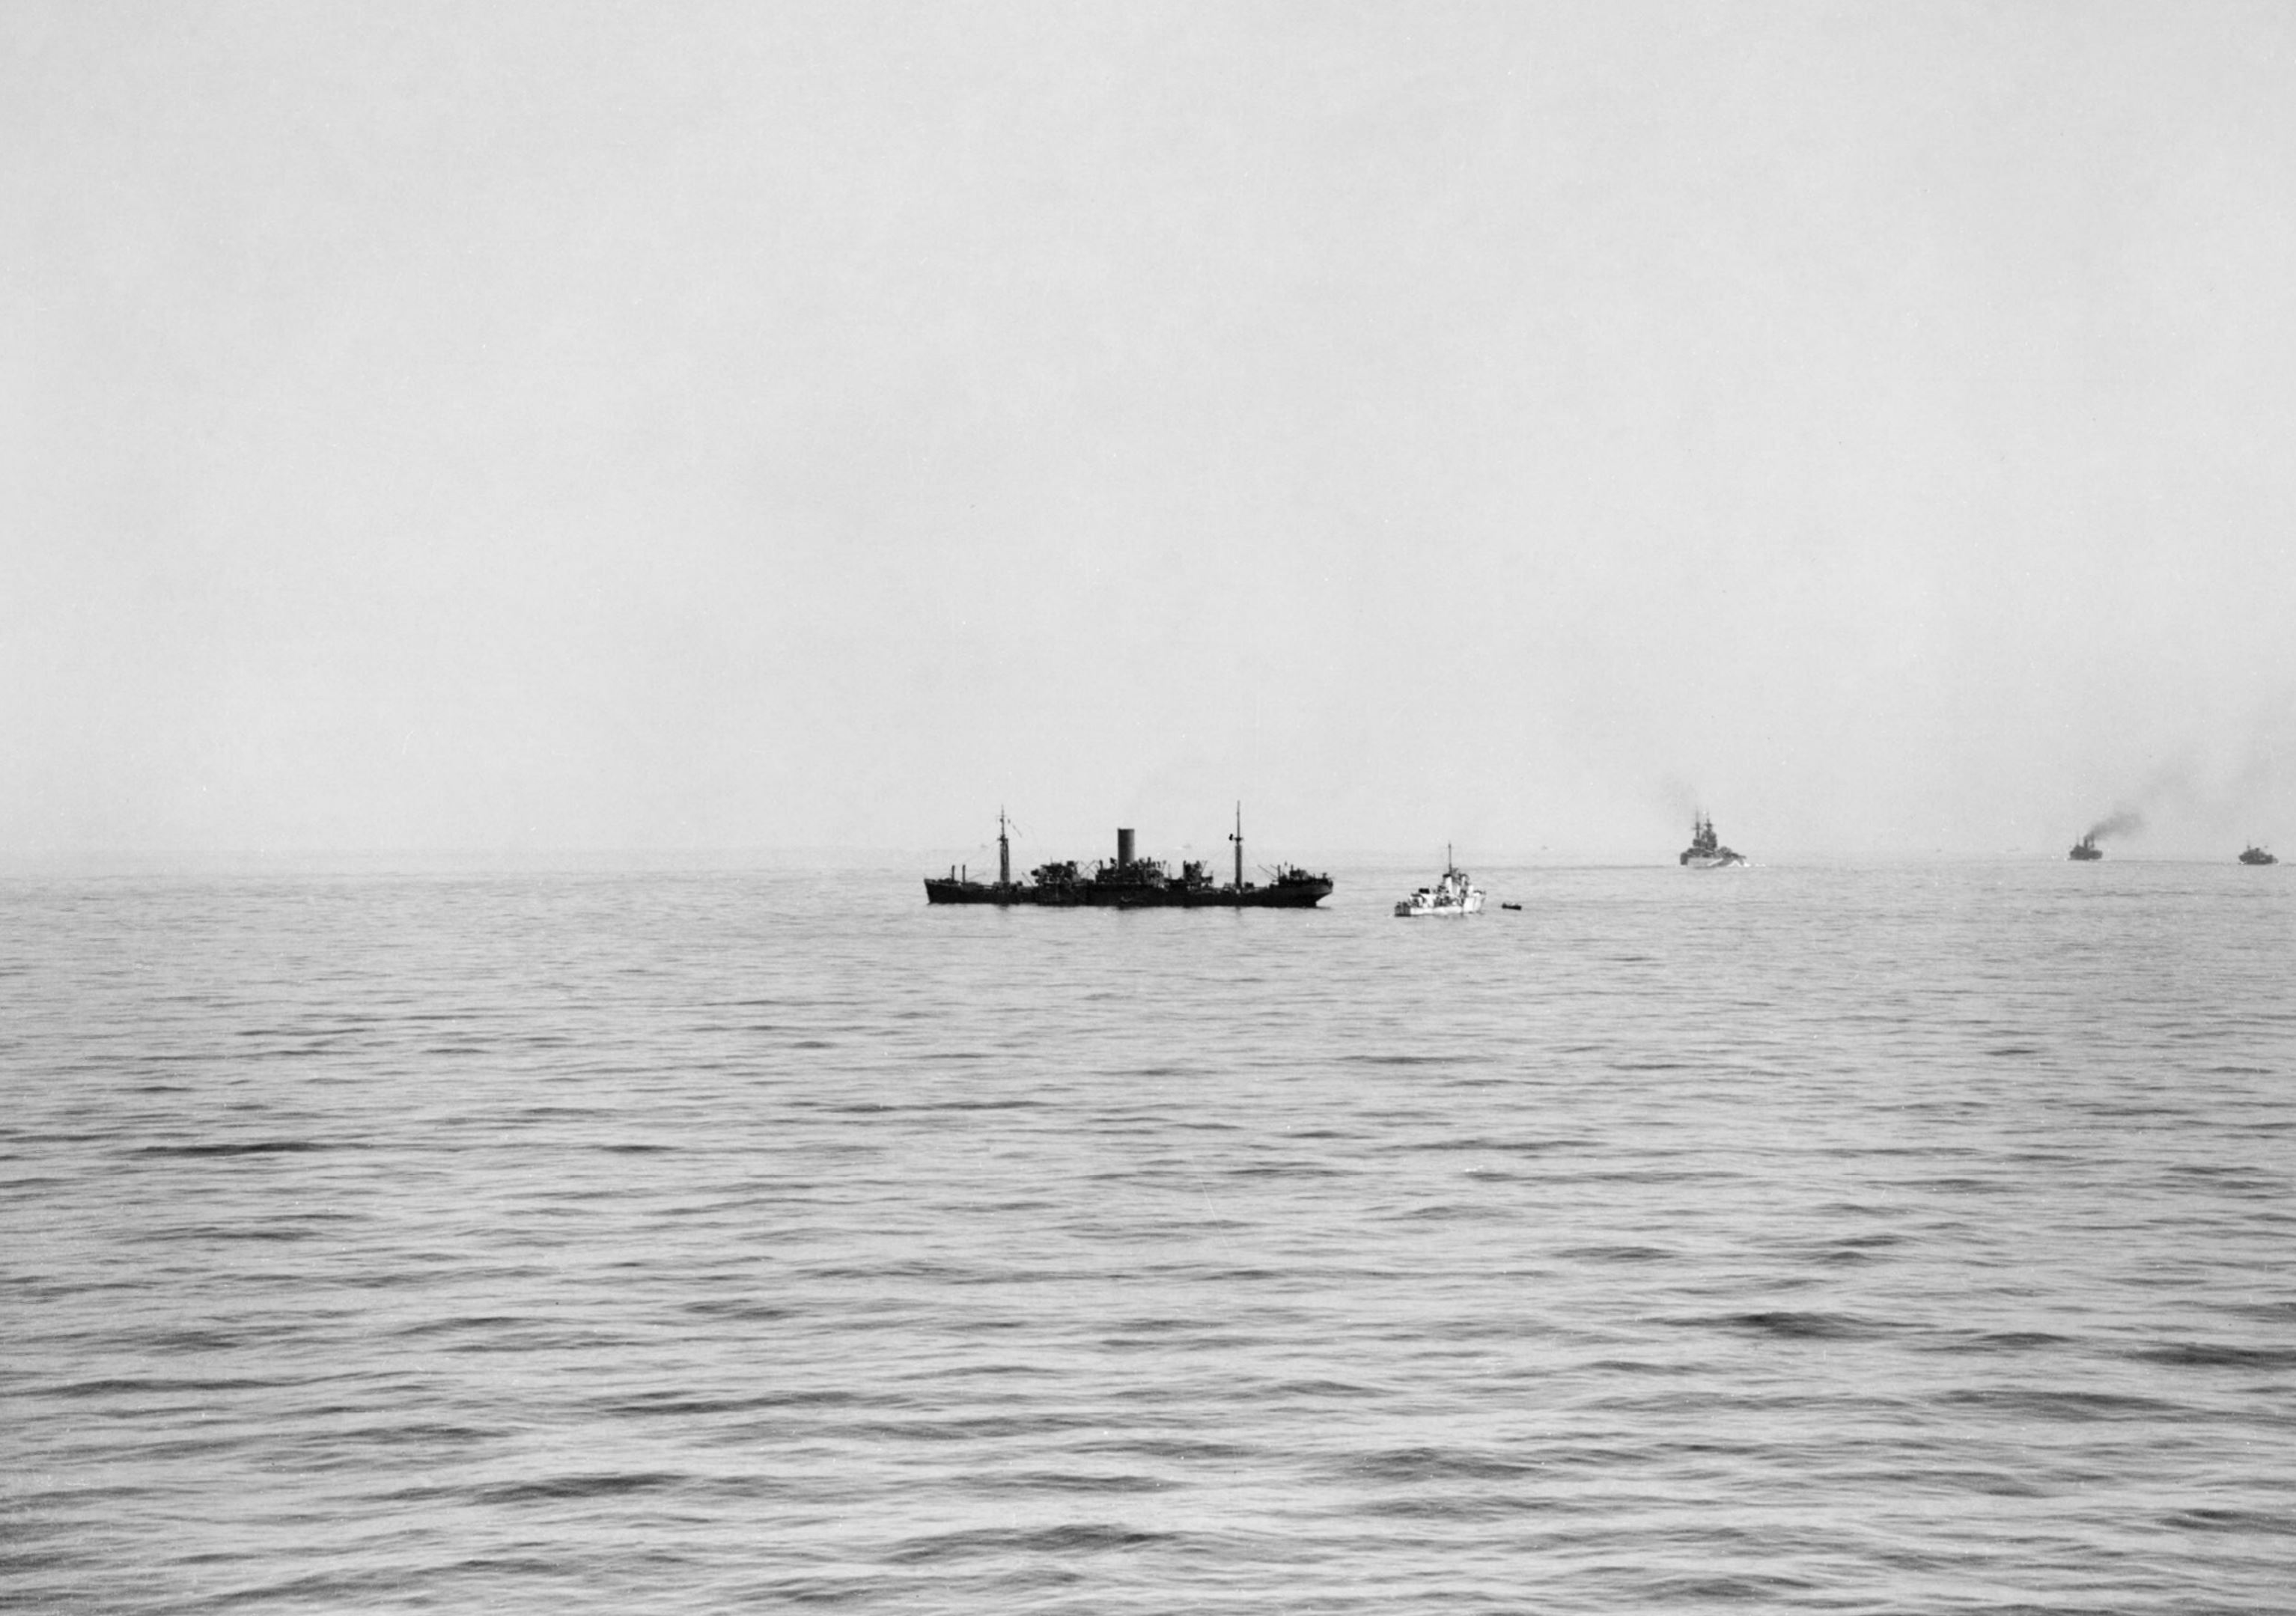 Destroyer possibly HMS Bramham with merchant ship SS Deucalion after been bombed Aug 1942 IWM A11188